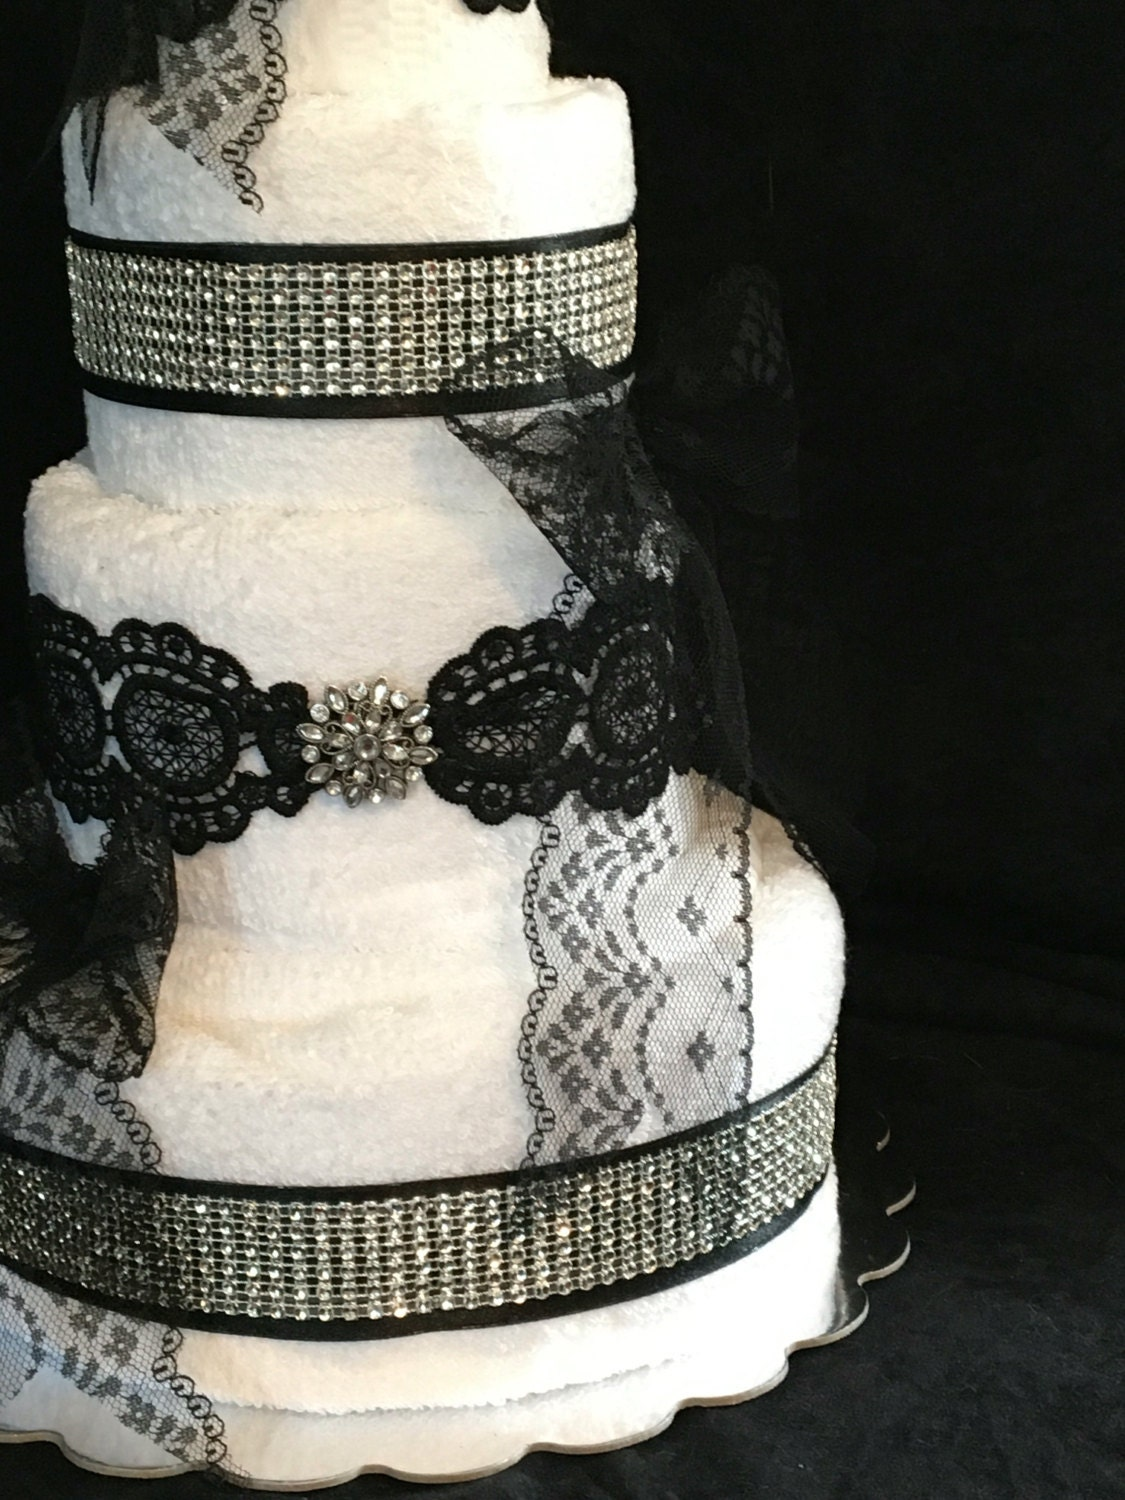 Black and White Elegant Towel Cake with rhinestones and lace